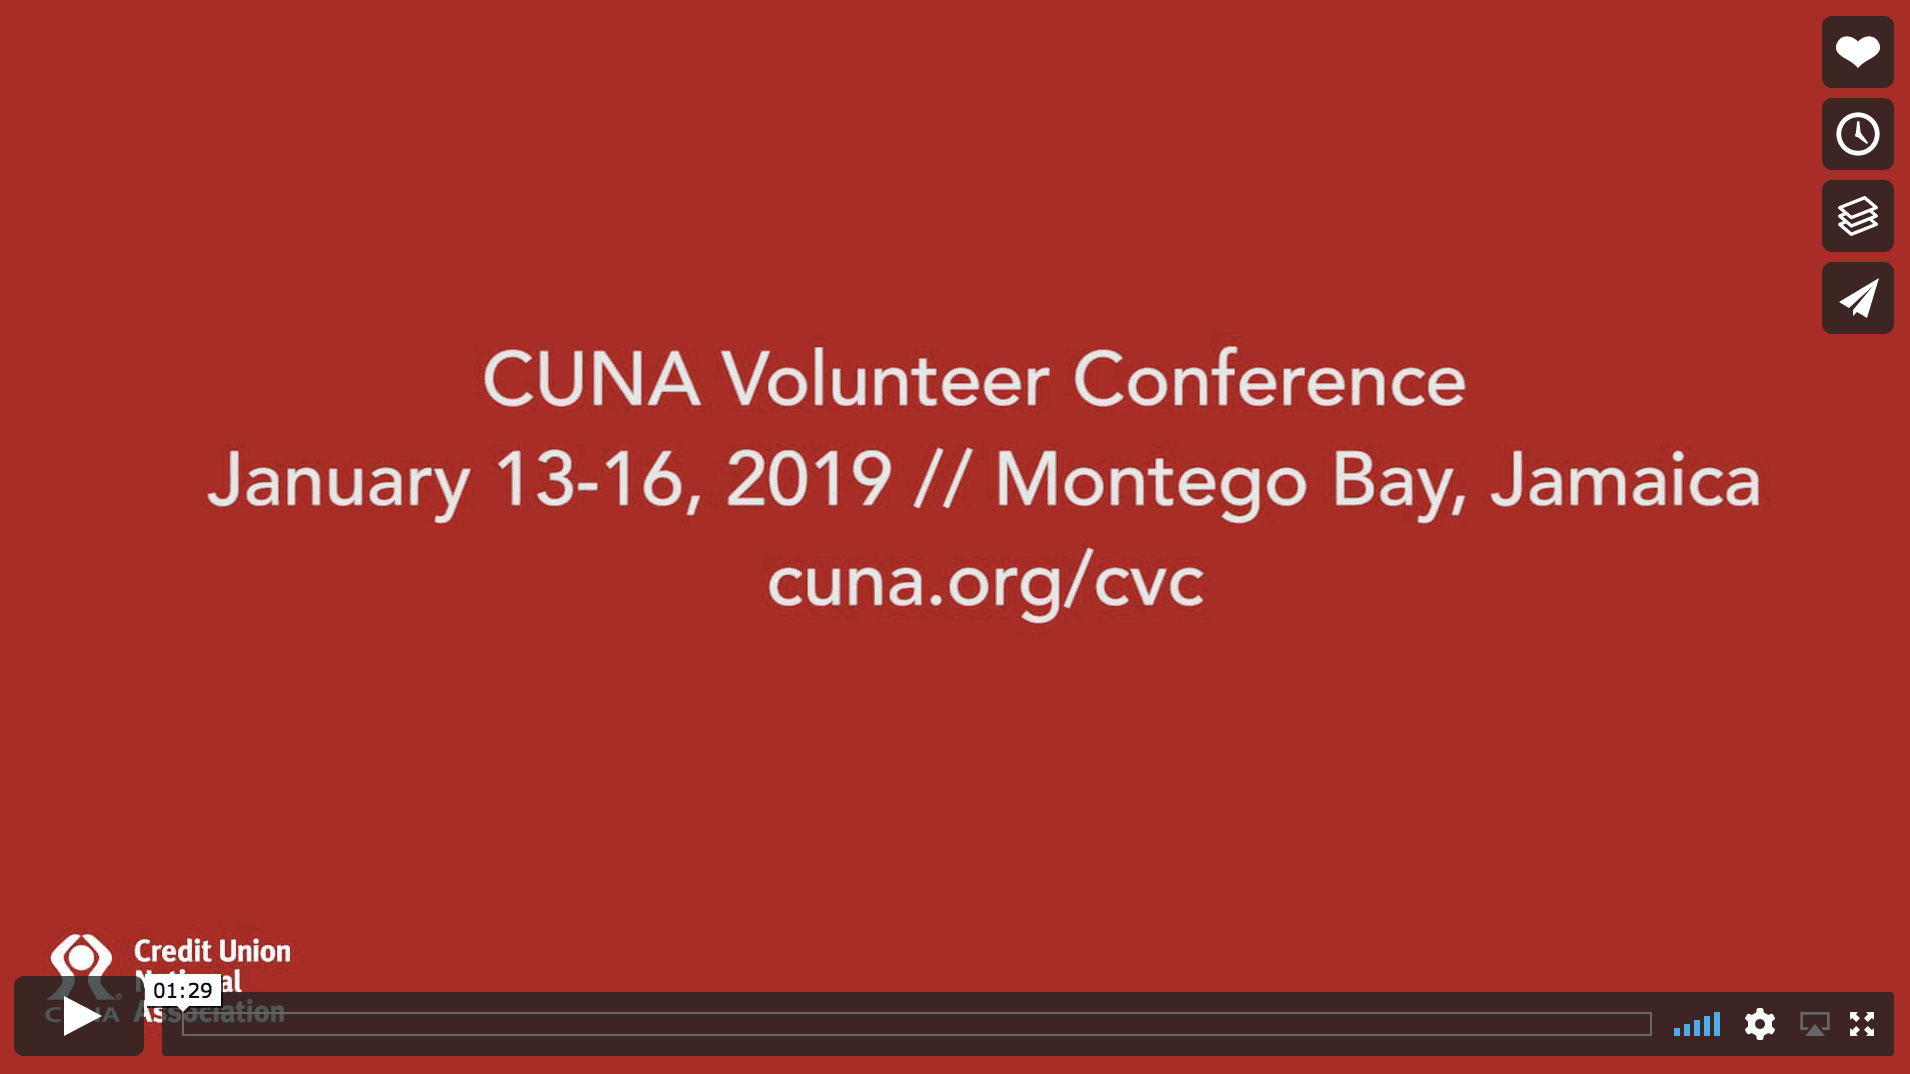 Screen shot of Vimeo video for the CUNA Volunteer Conference in January 2019